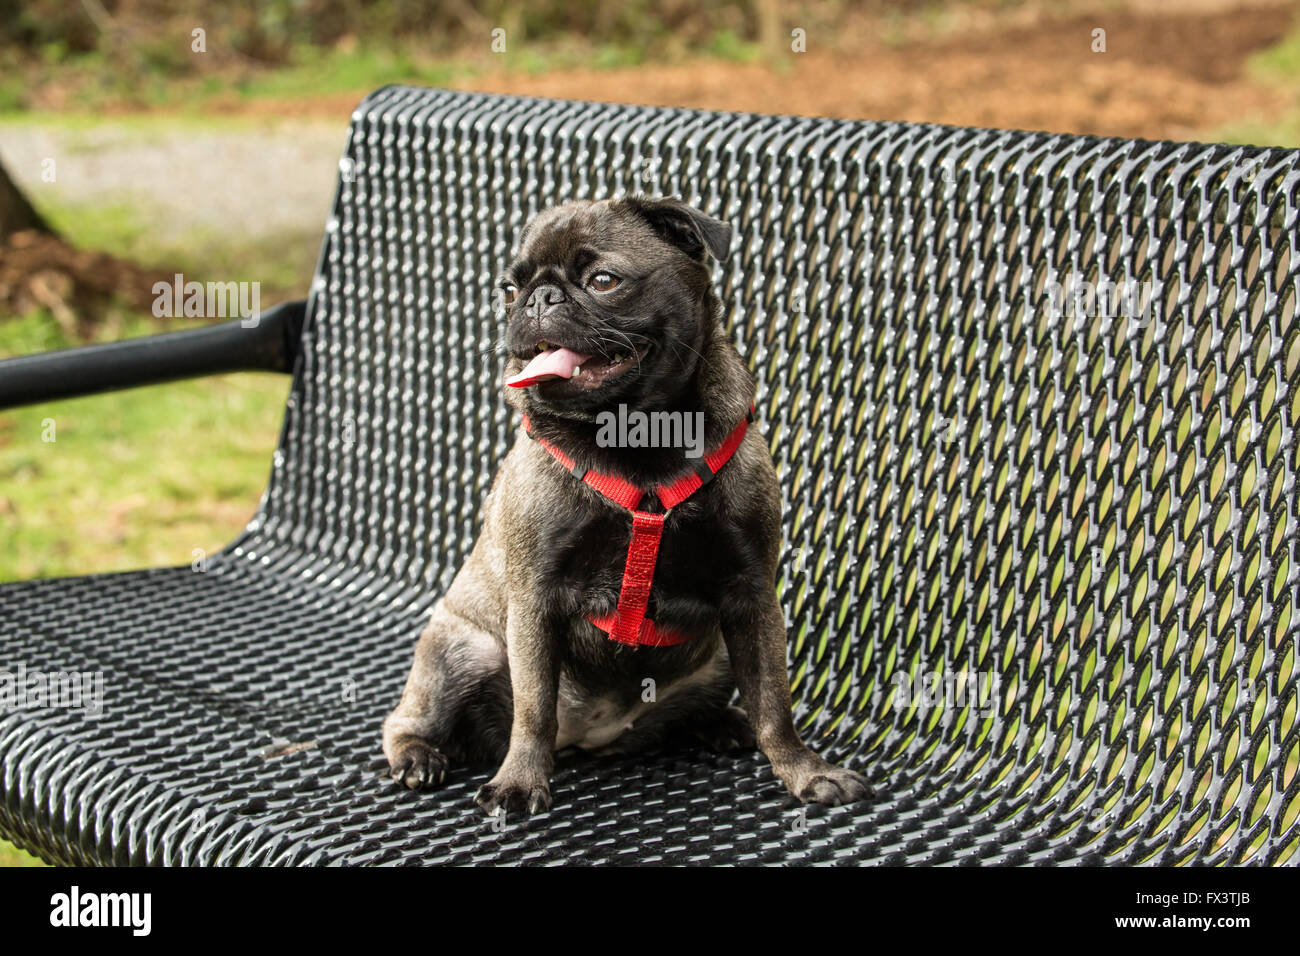 Olive, the Pug, sitting on a metal park bench in Issaquah, Washington, USA - Stock Image